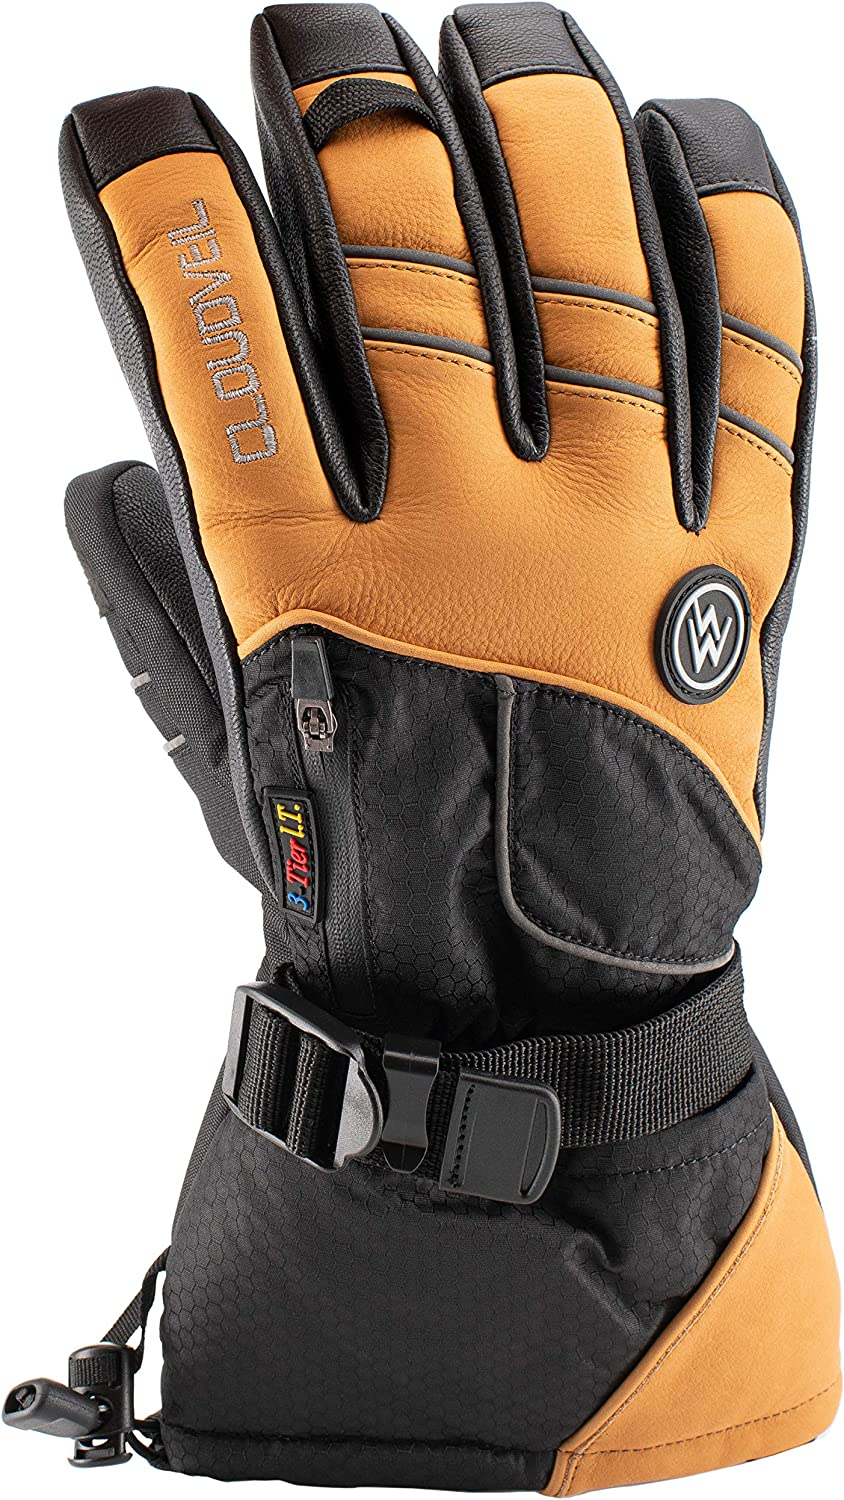 Thunder Paws All Terrain 5-in-1 glove system, Snowboarding, Ski, Outdoor, insulated waterproof winter gloves.